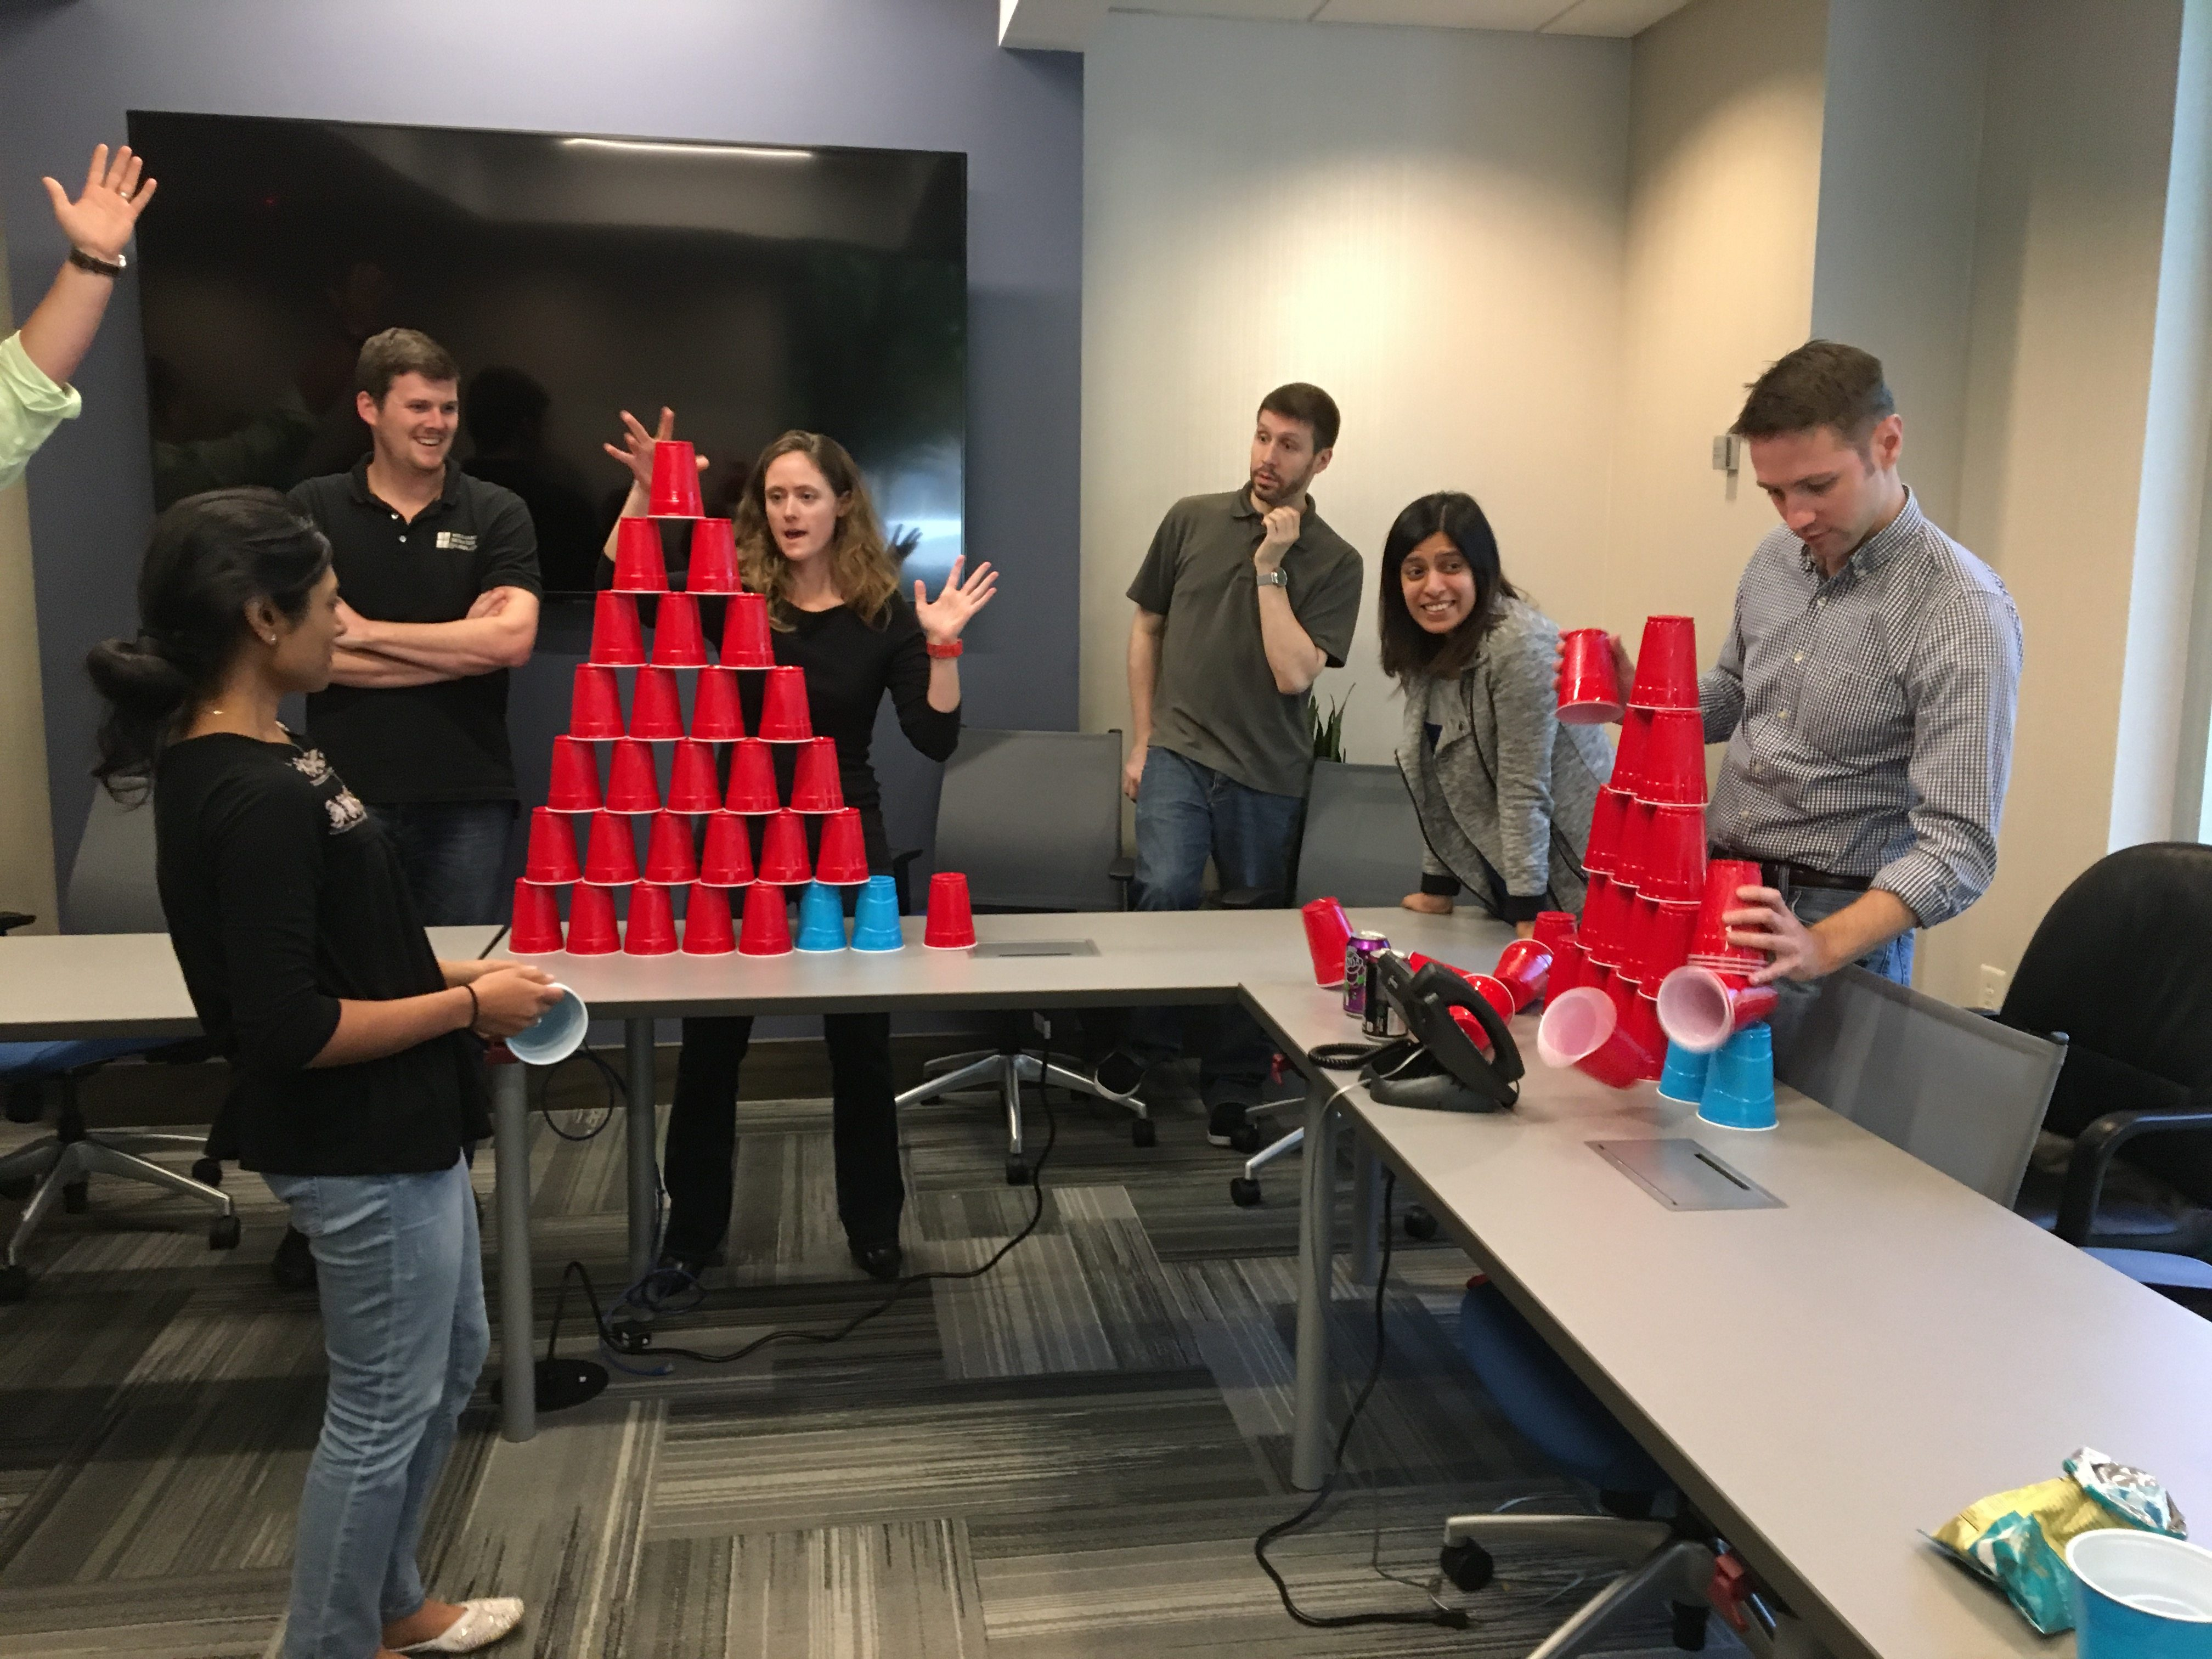 For Halloween 2016, staff competed in cup stacking.